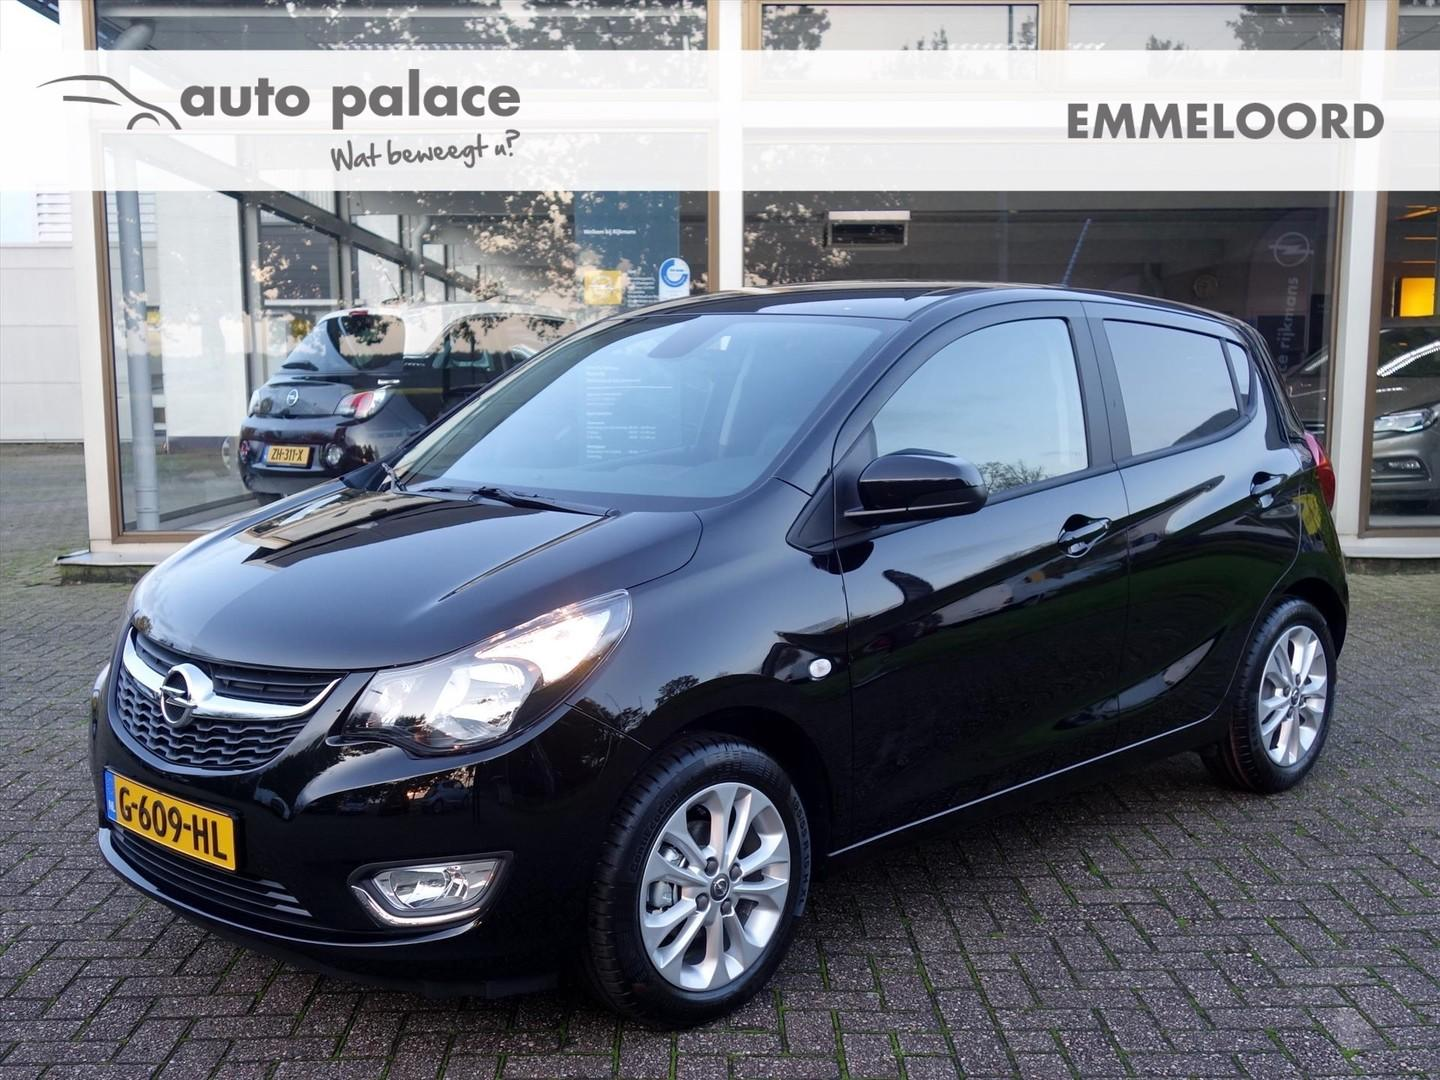 Opel Karl 1.0 75pk innovation ecc navi winterpakket parkpilot cruise lmv